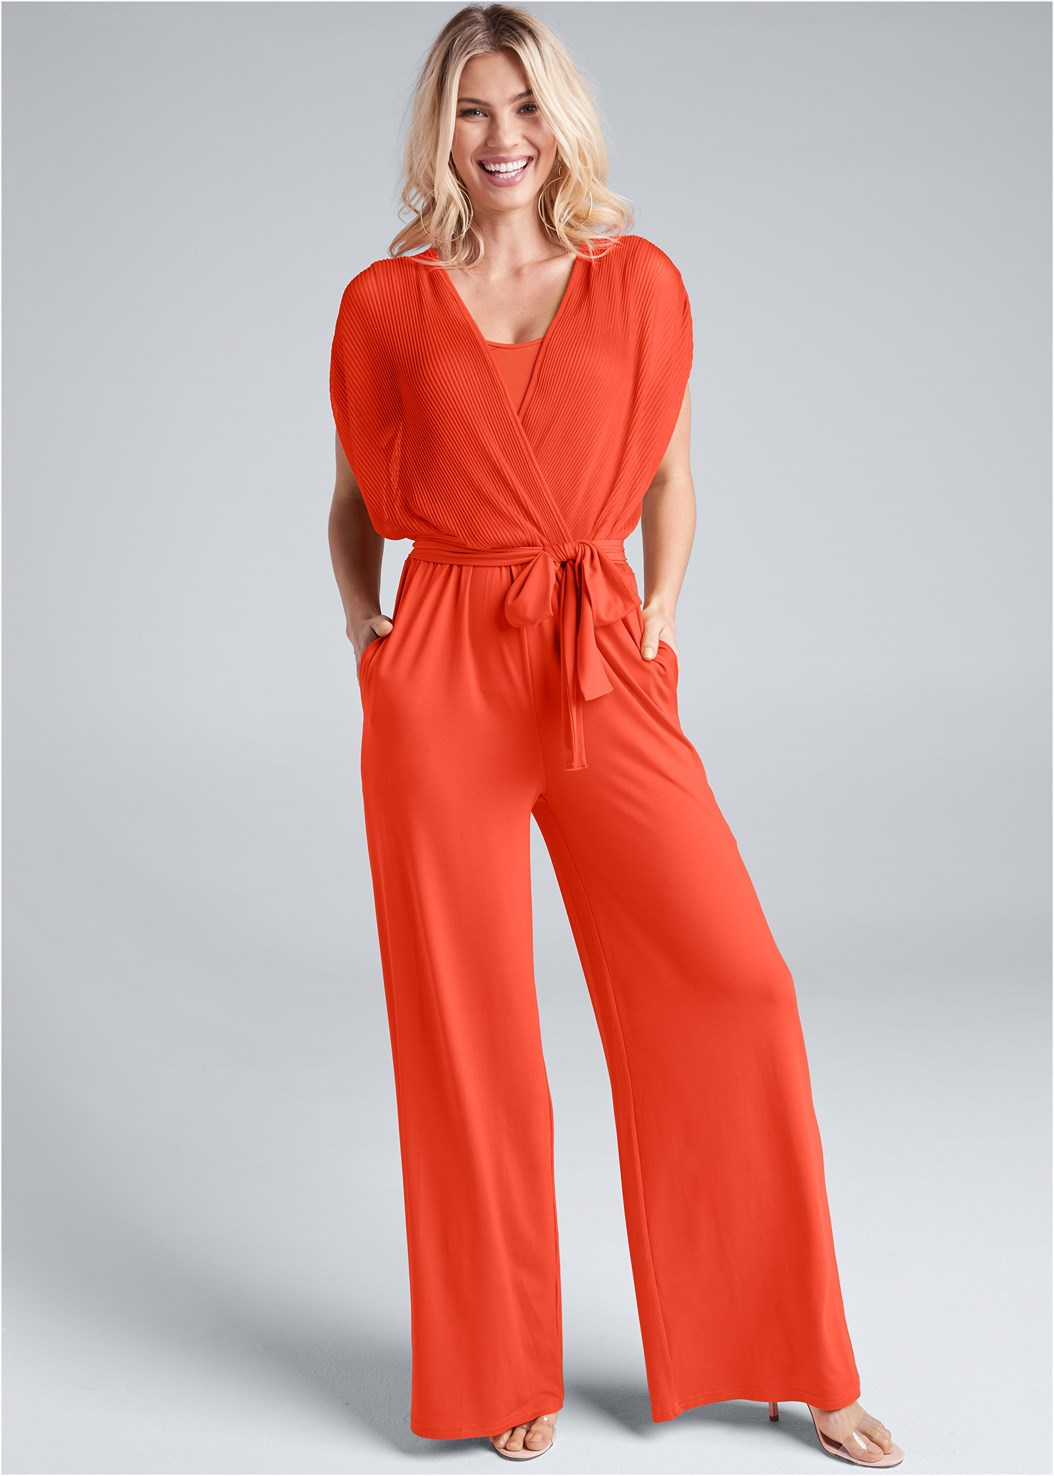 Pleated Tie Front Jumpsuit,Embellished Lucite Heel,Hoop Earrings